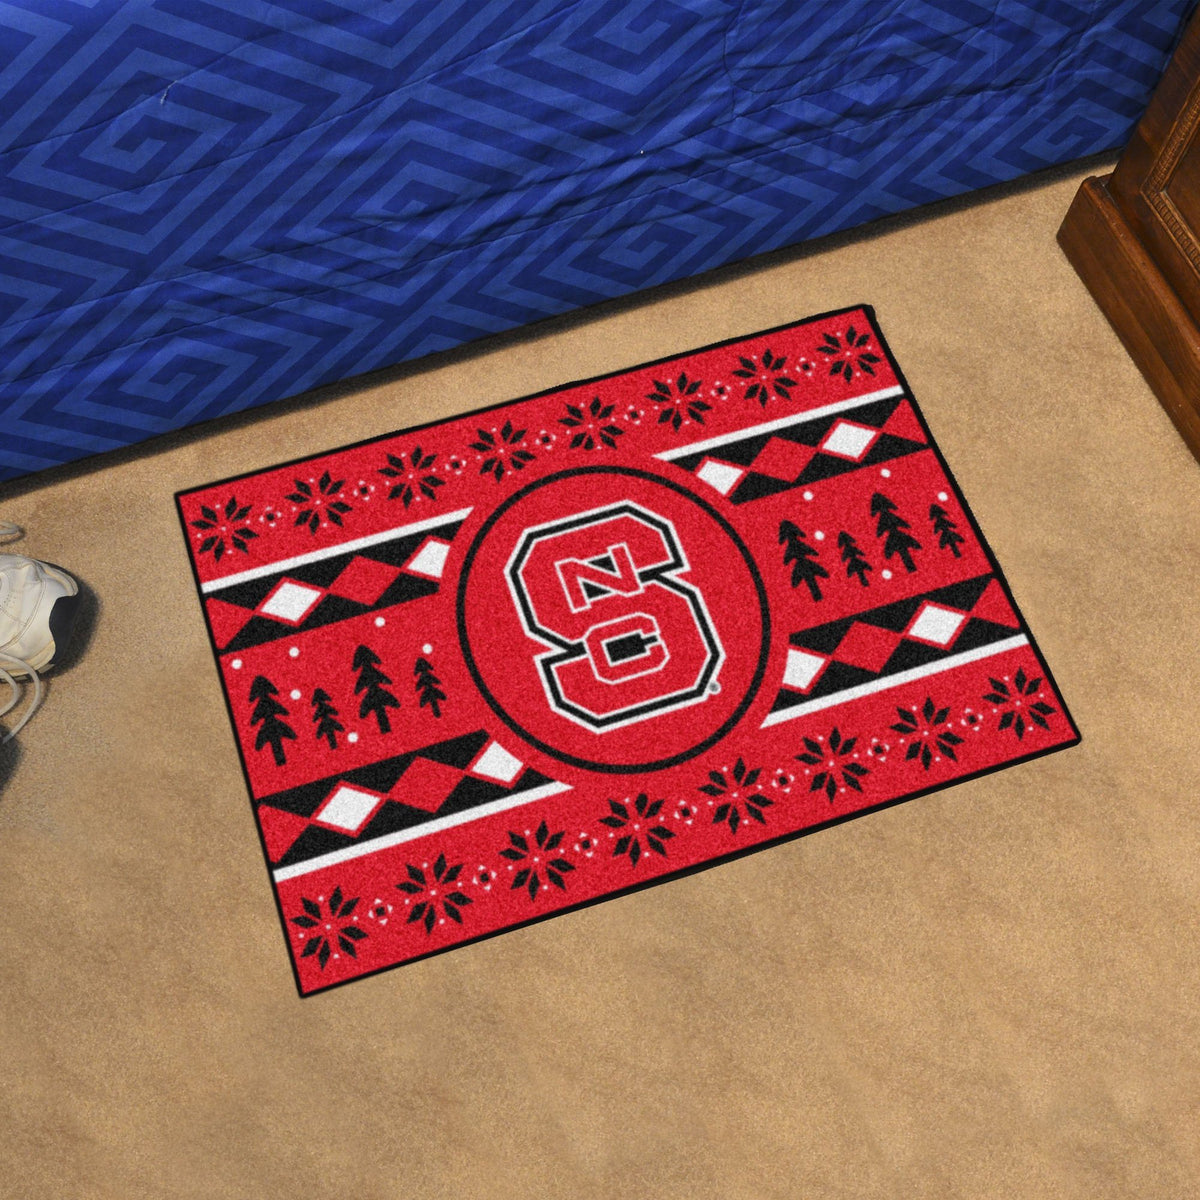 Collegiate - Holiday Sweater Starter Mat Collegiate Mats, Rectangular Mats, Holiday Sweater Starter Mat, Collegiate, Home Fan Mats NC State